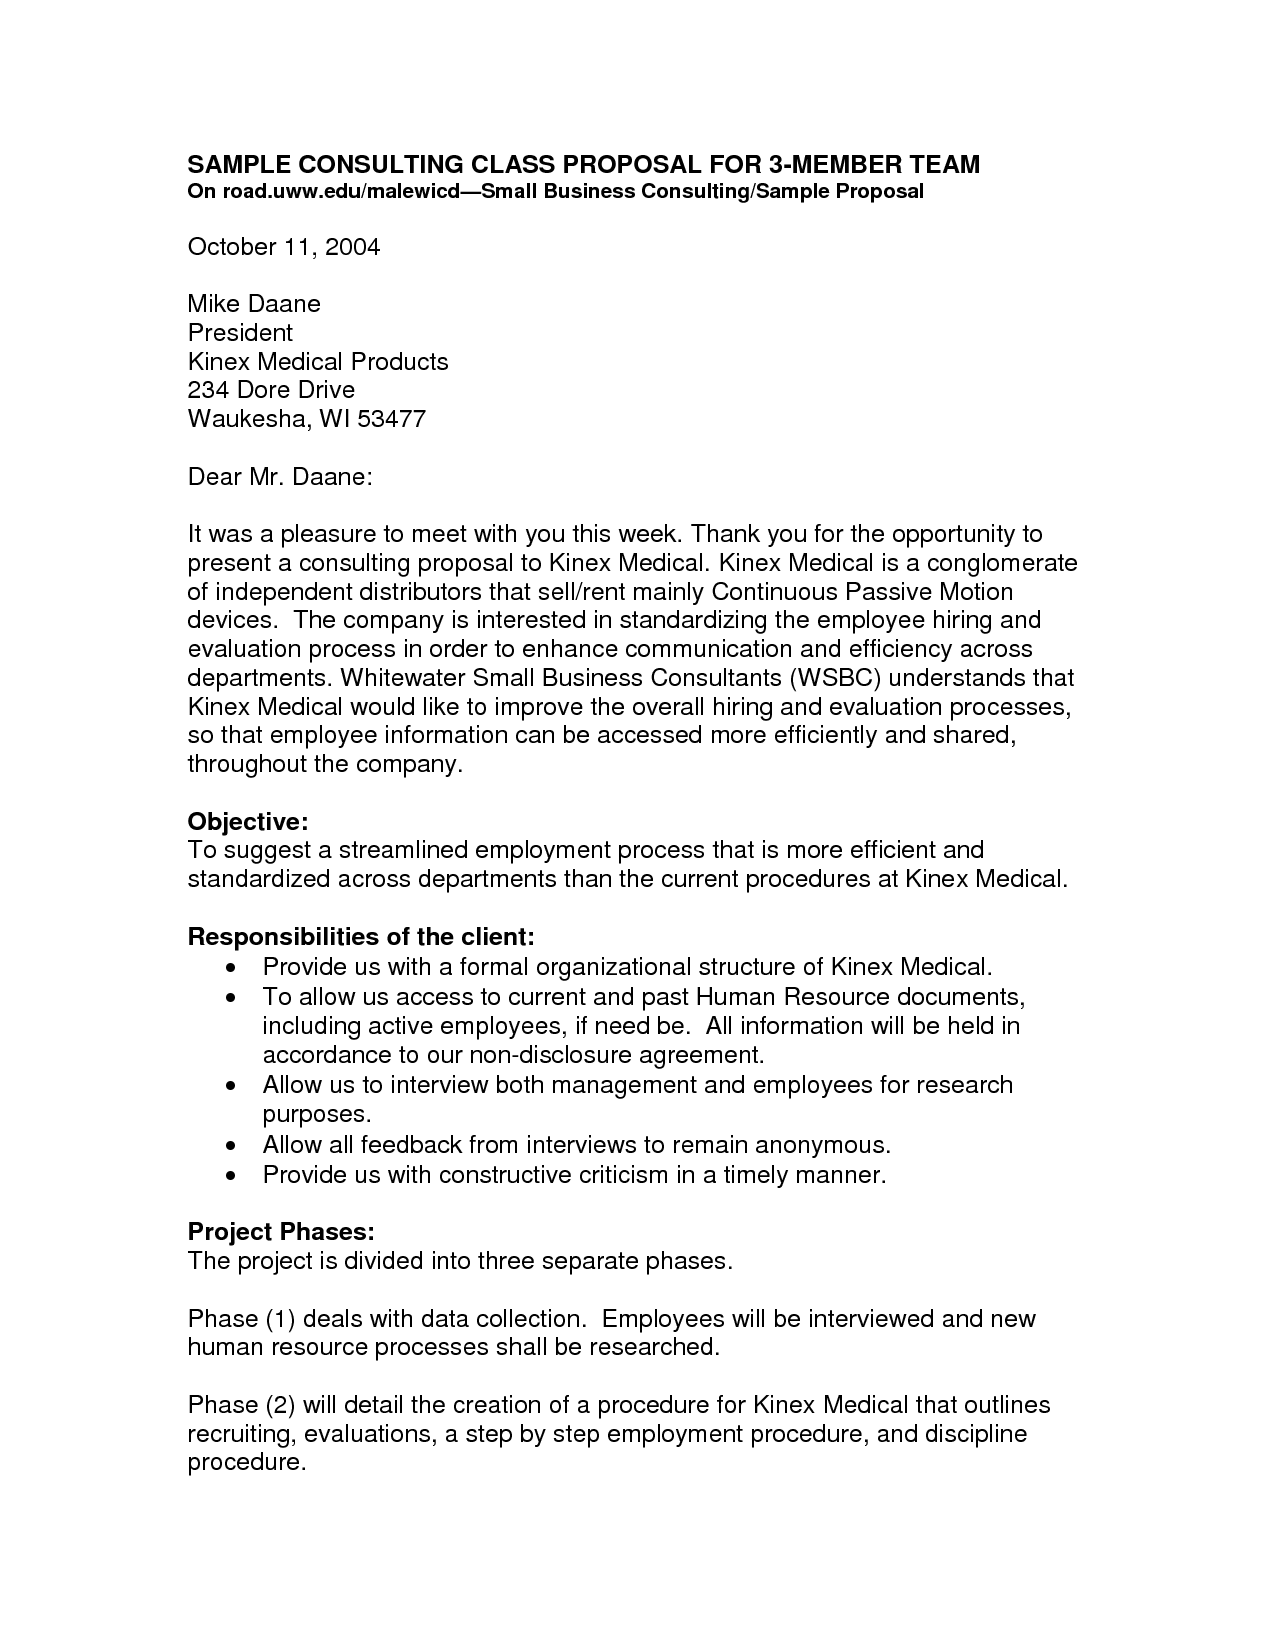 essay proposal sample how to write a proposal essay outline – Research Proposal Cover Letter